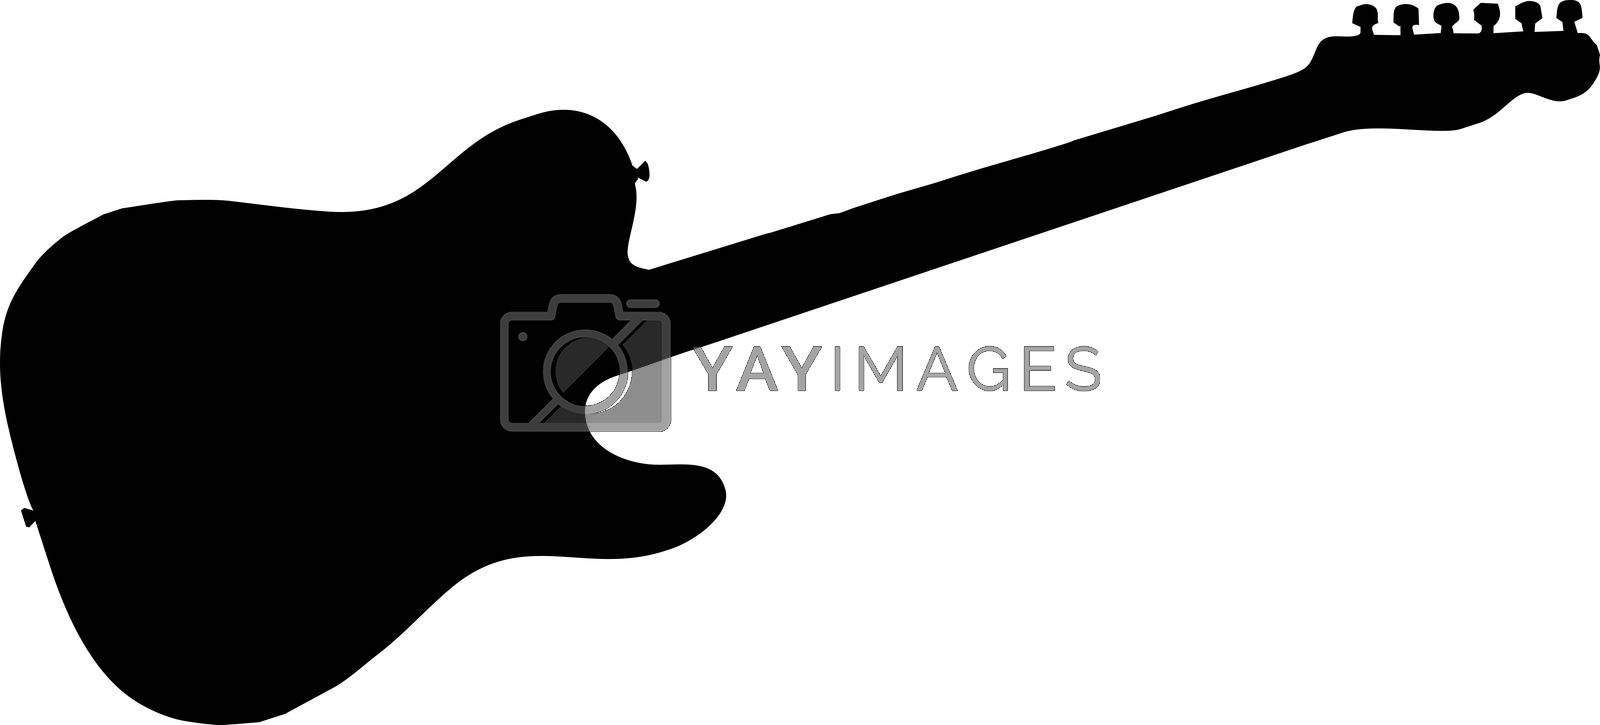 Electric Guitar Silhouette Royalty Free Stock Image Stock Photos Royalty Free Images Vectors Footage Yayimages Download these guitar silhouette background or photos and you can use them for many purposes, such as banner, wallpaper, poster background as well as powerpoint background and website background. https www yayimages com 5138440 electric guitar silhouette html